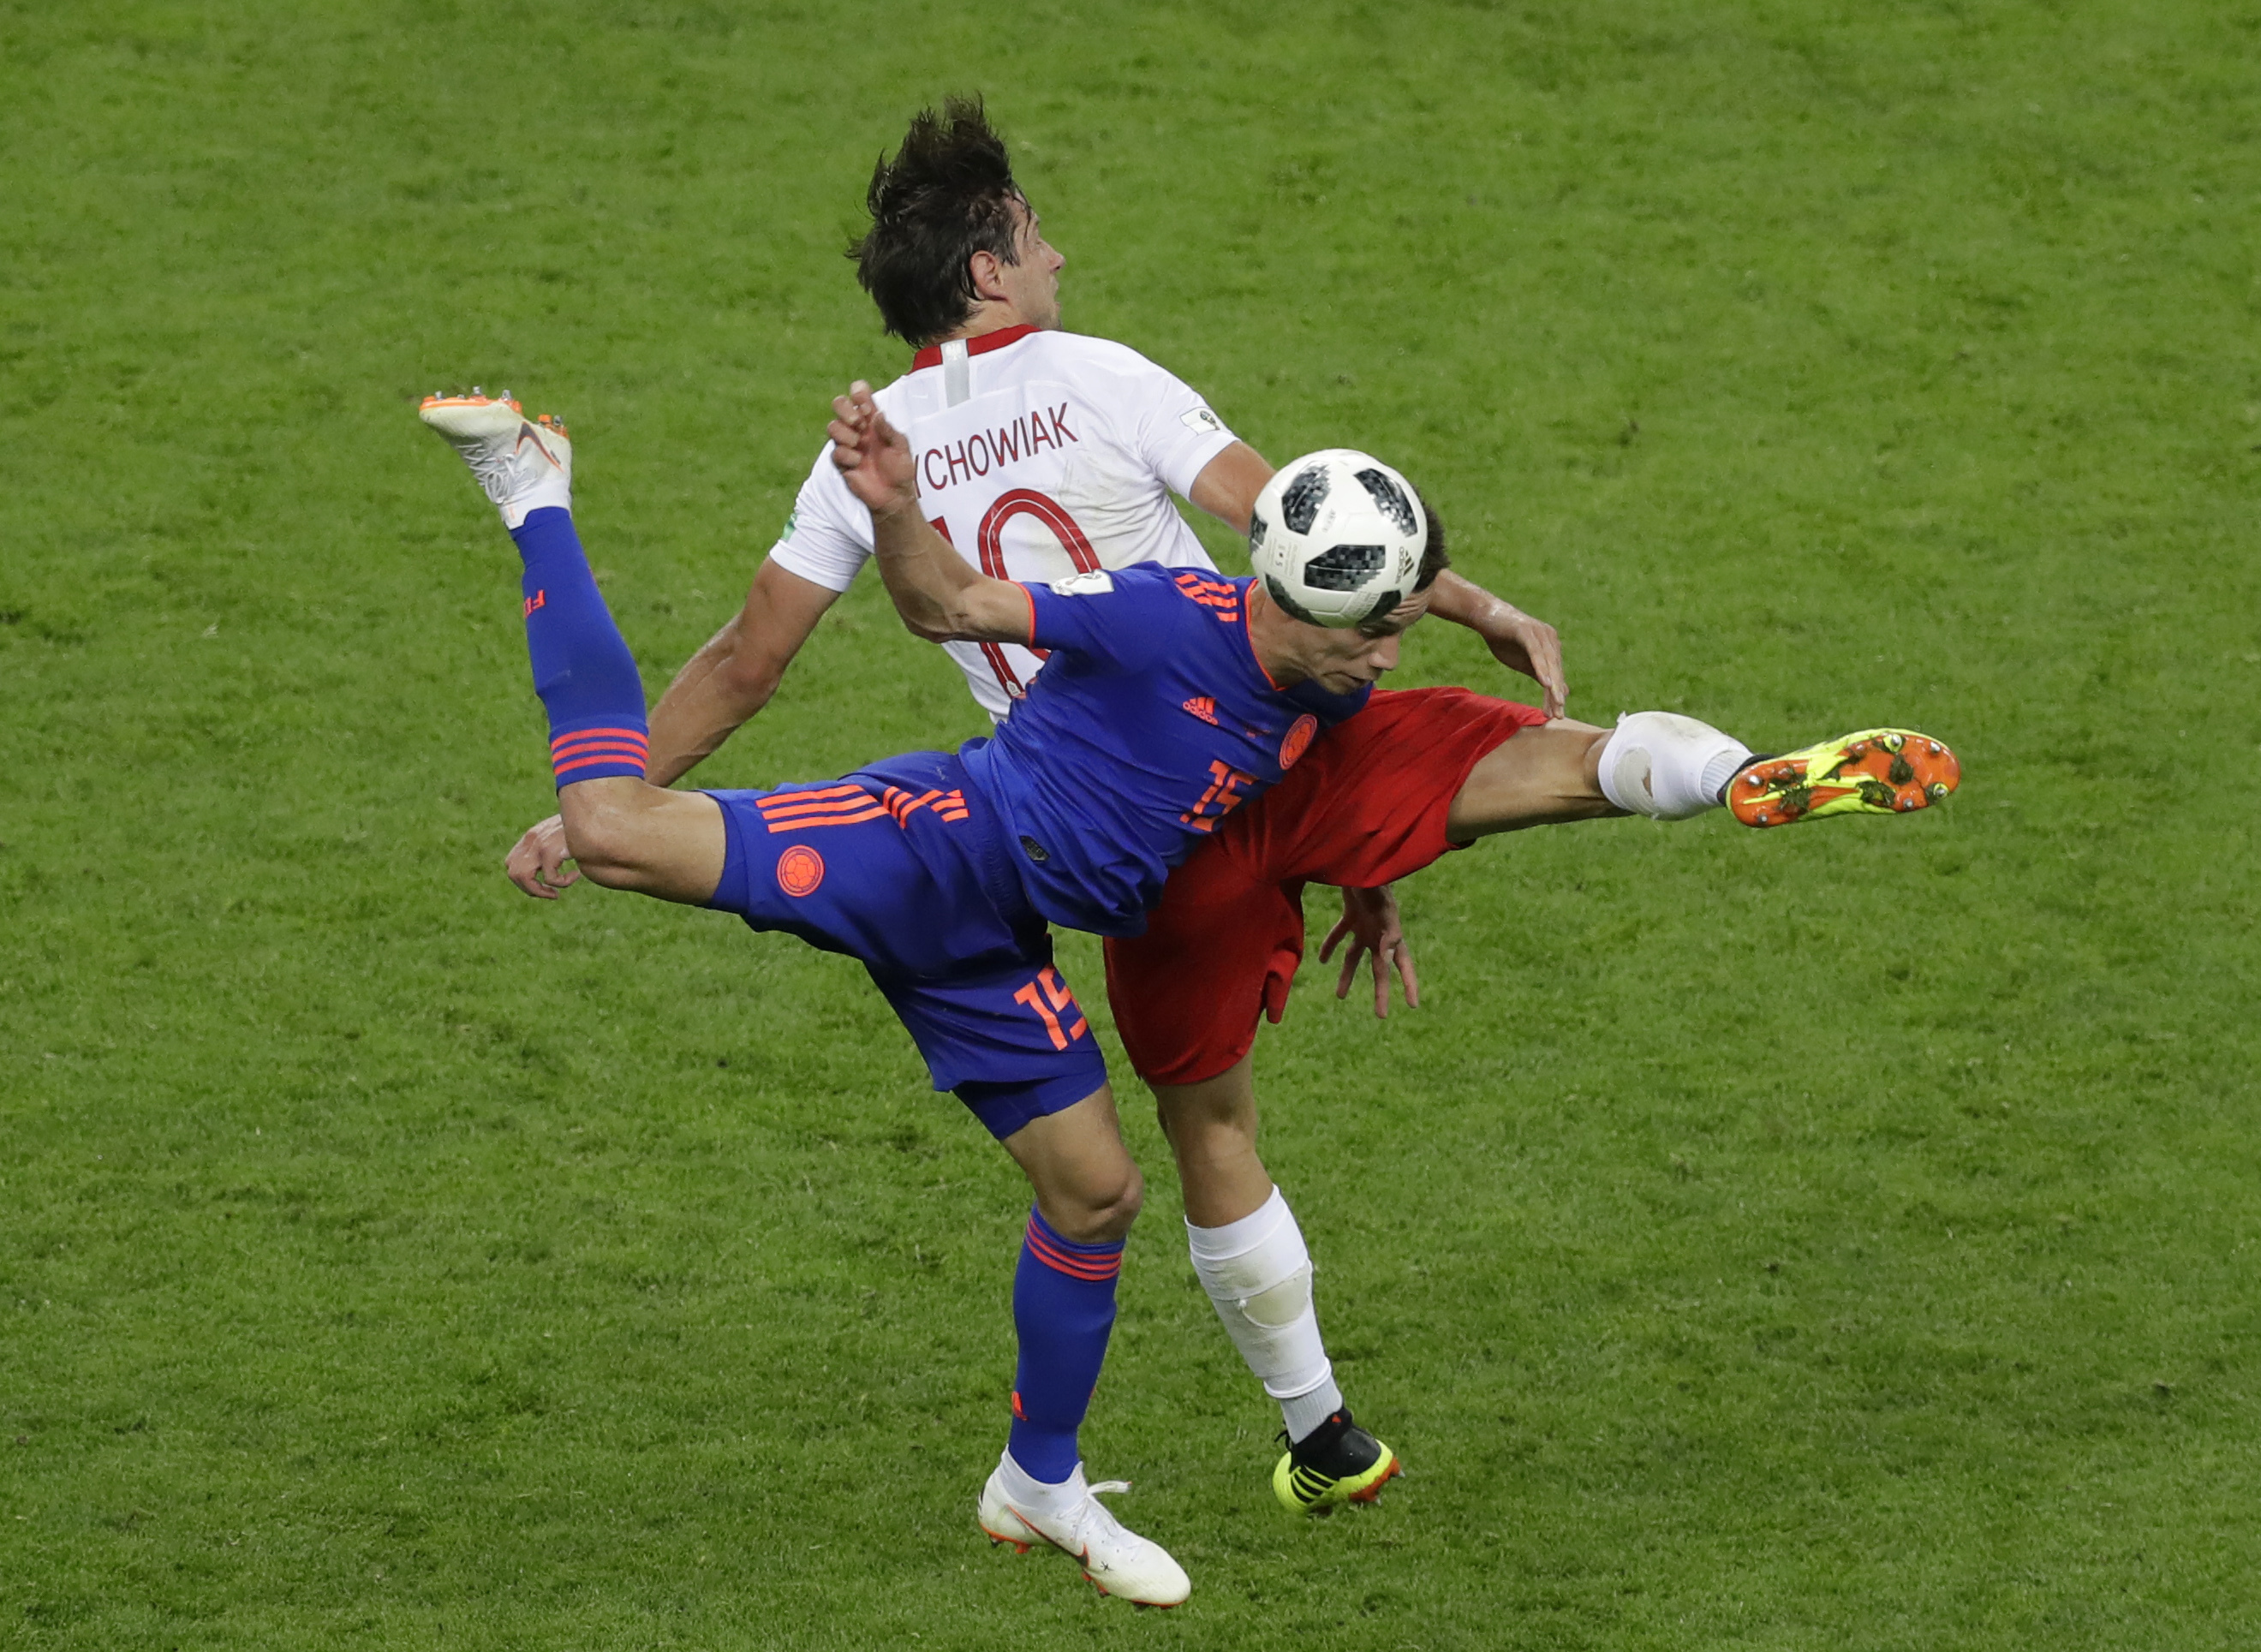 <div class='meta'><div class='origin-logo' data-origin='none'></div><span class='caption-text' data-credit='Sergei Grits/AP Photo'>Colombia's Mateus Uribe, front, and Poland's Grzegorz Krychowiak battle for the ball during the group H match at the Kazan Arena in Kazan, Russia, Sunday, June 24, 2018.</span></div>